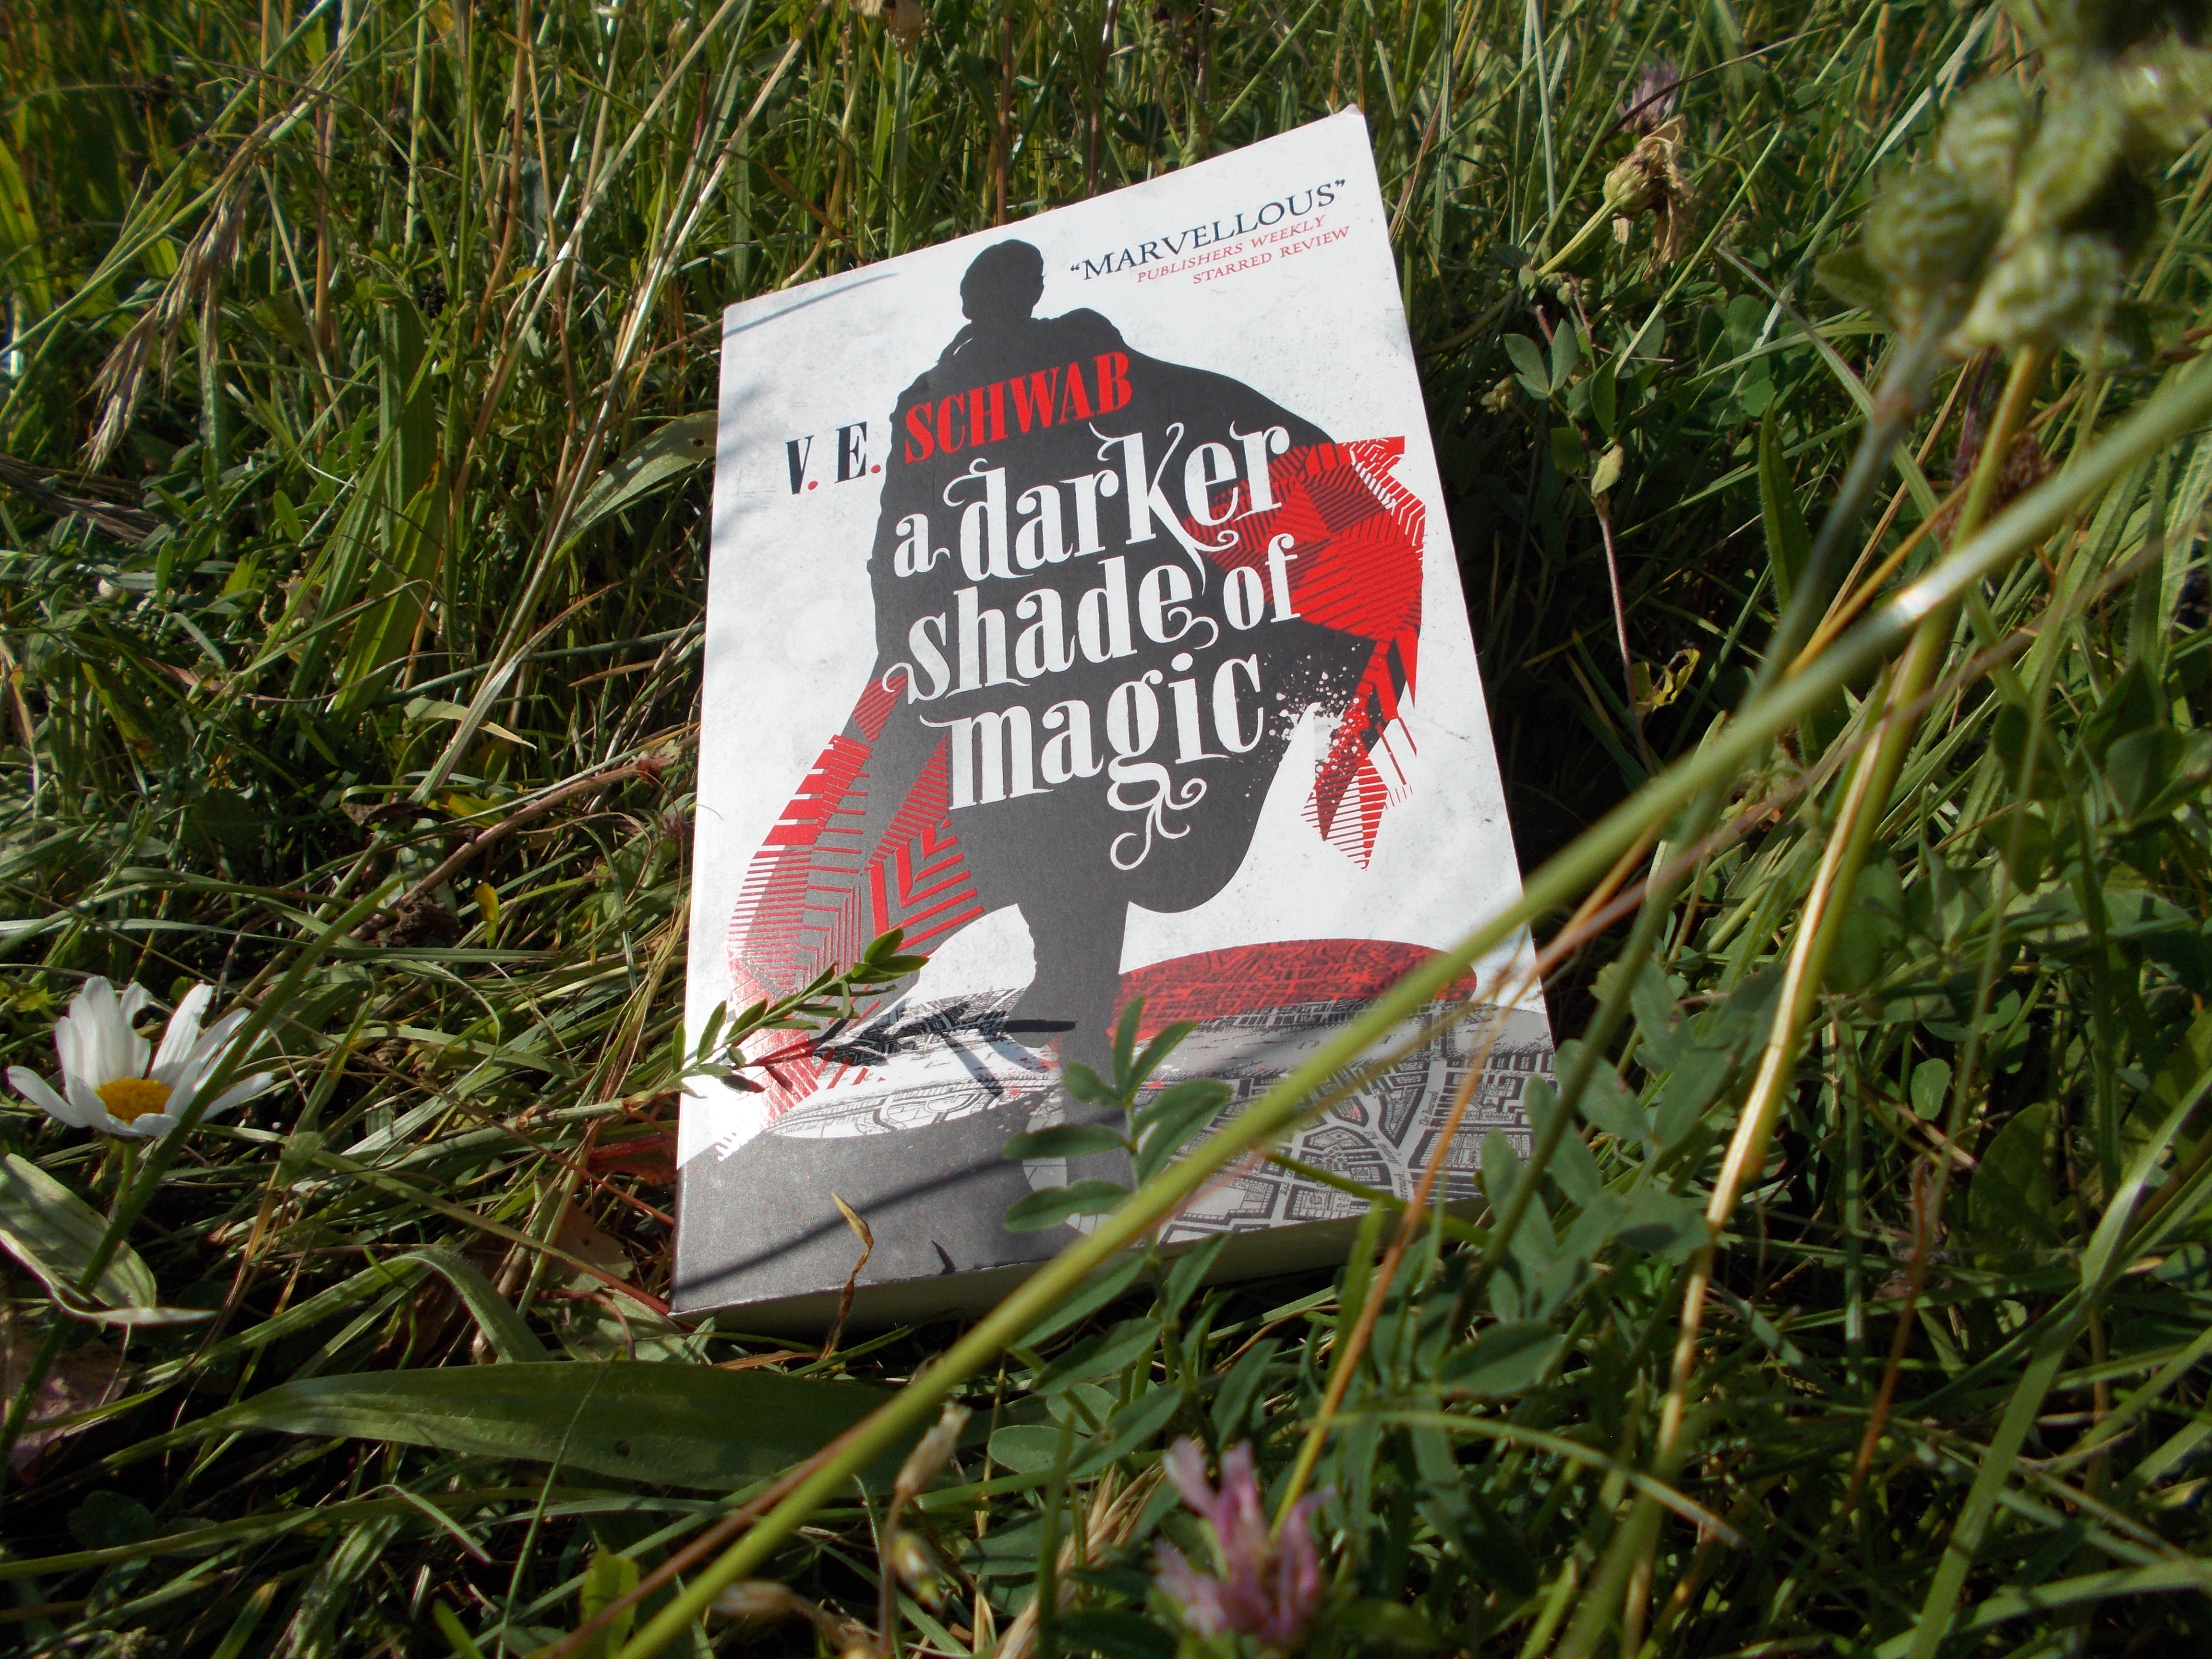 A Darker Shade of Magic by VE Schwab.